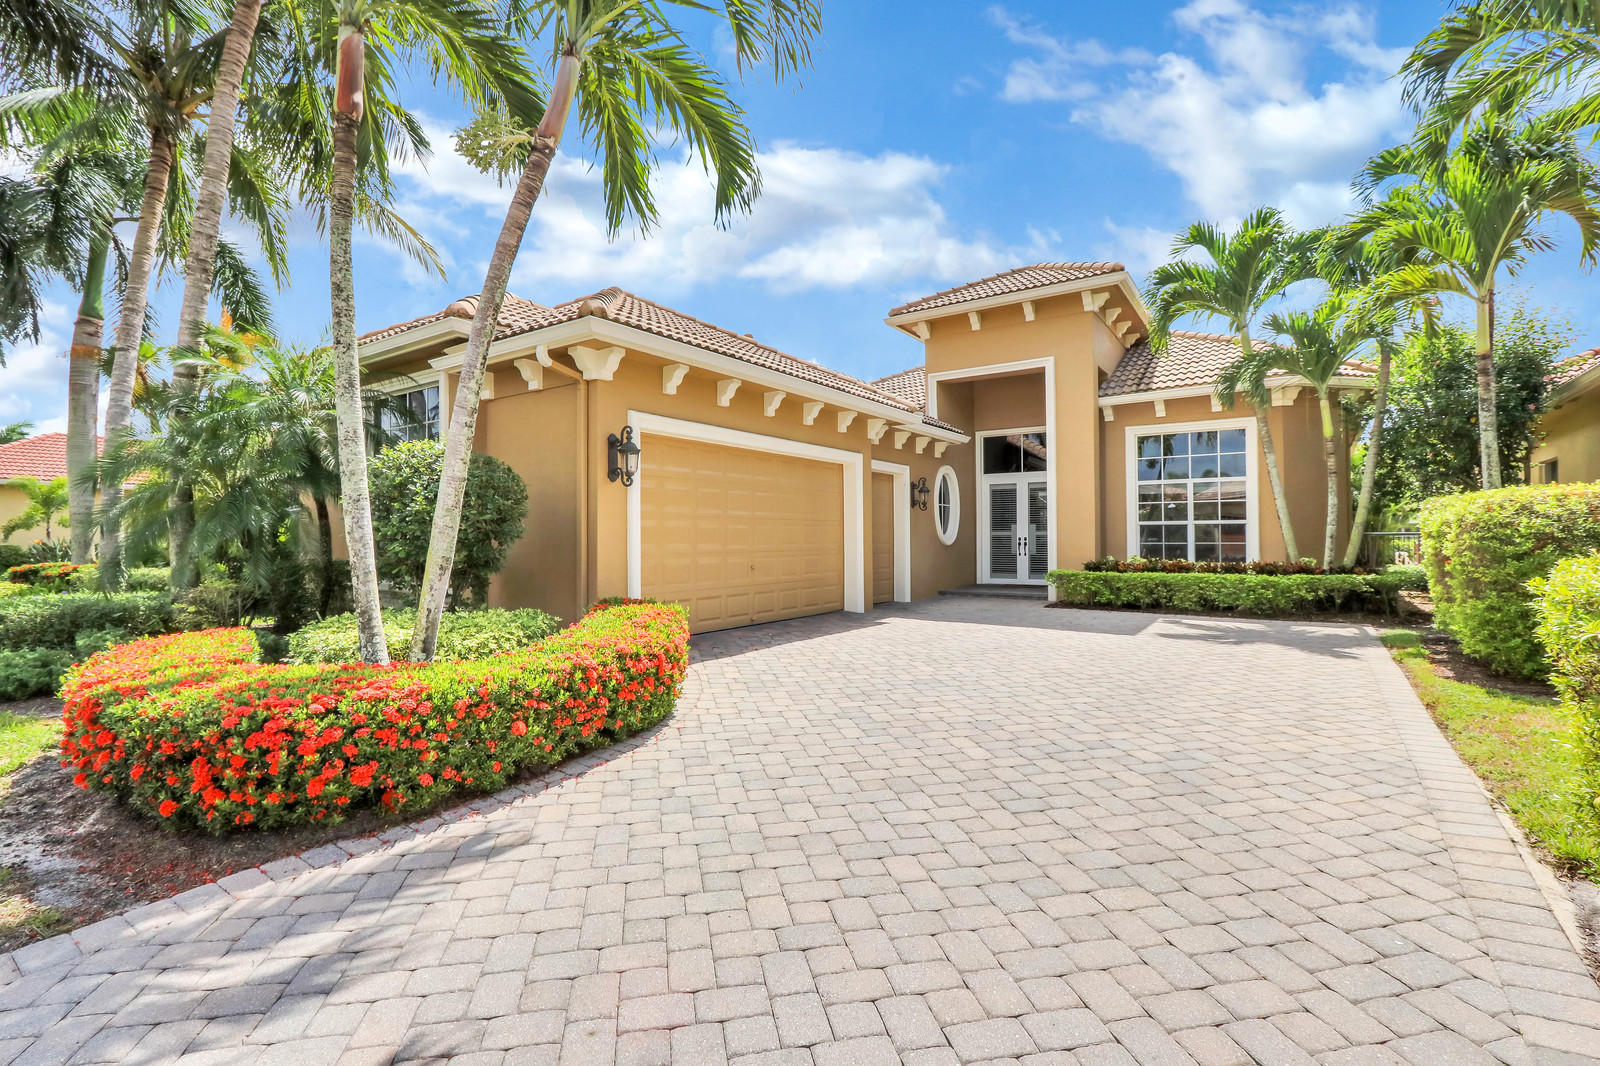 Home for sale in Sand Cay-ibis West Palm Beach Florida